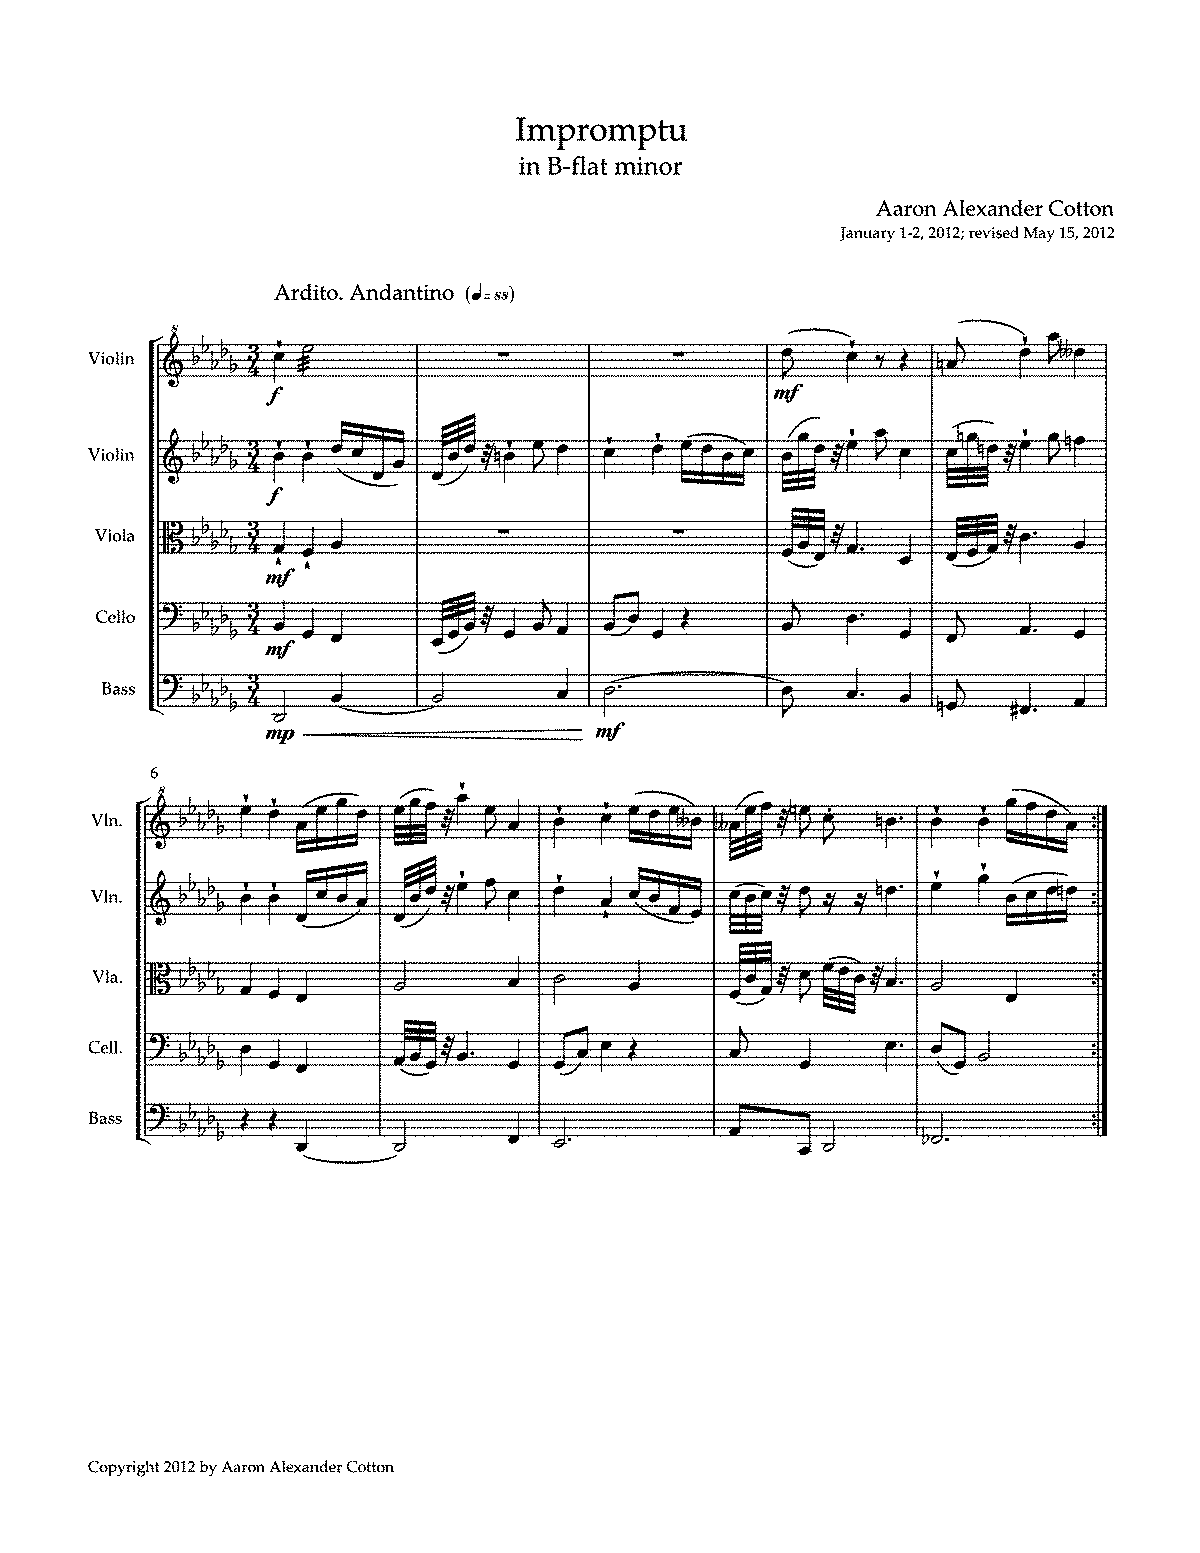 PMLP363088-Impromptu in B-flat minor by Aaron Alexander Cotton.pdf